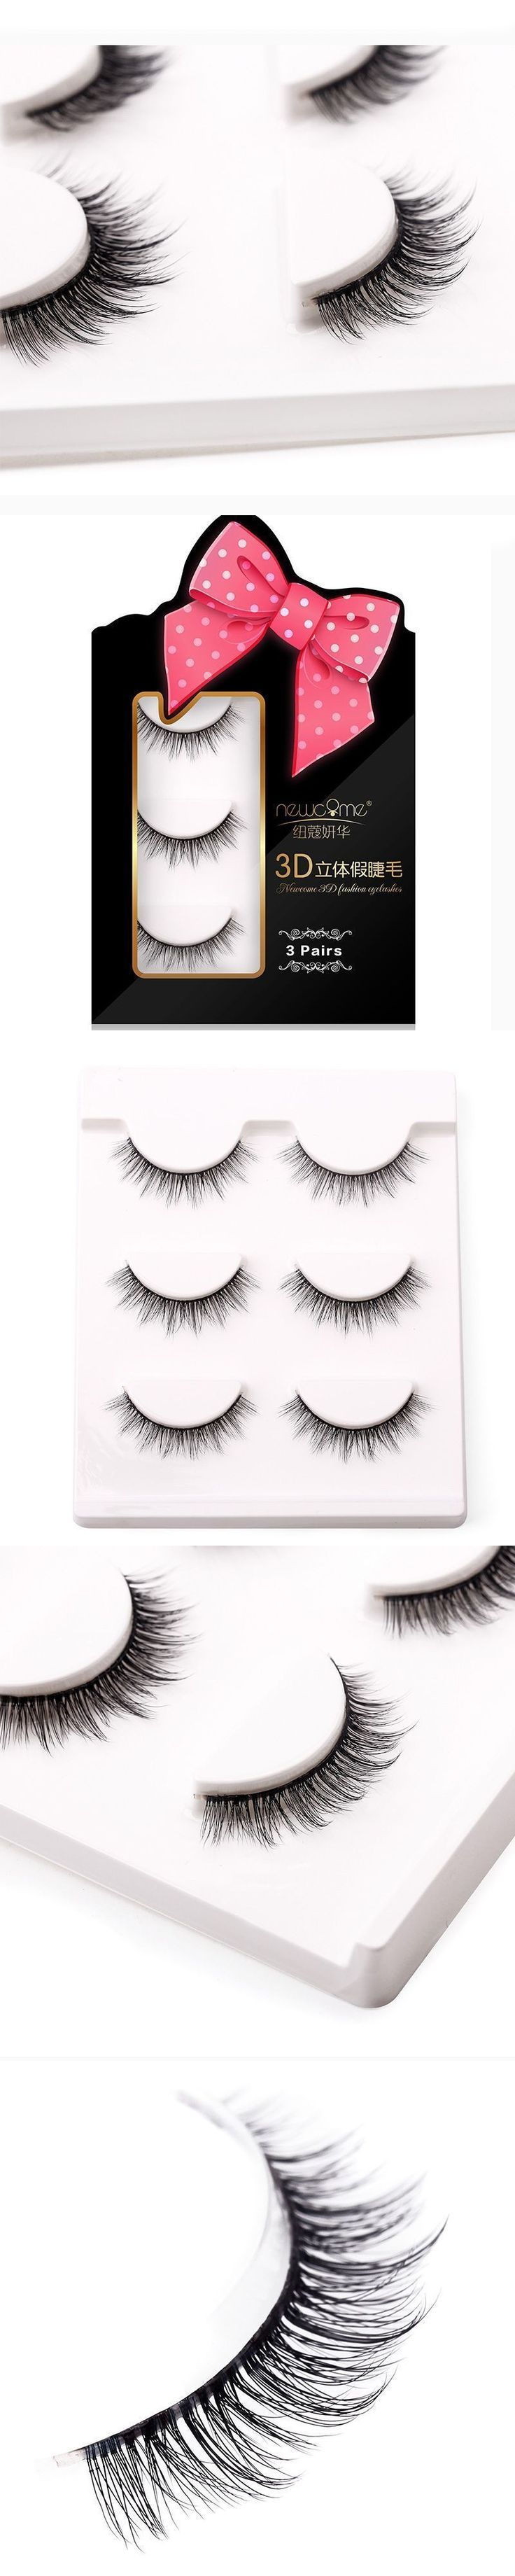 Wholesale Natural 3D 100% Handmade Faux Mink False Eye Lashes/ Cheap Fake Eyelashes Extensions For Makeup Free Shipping